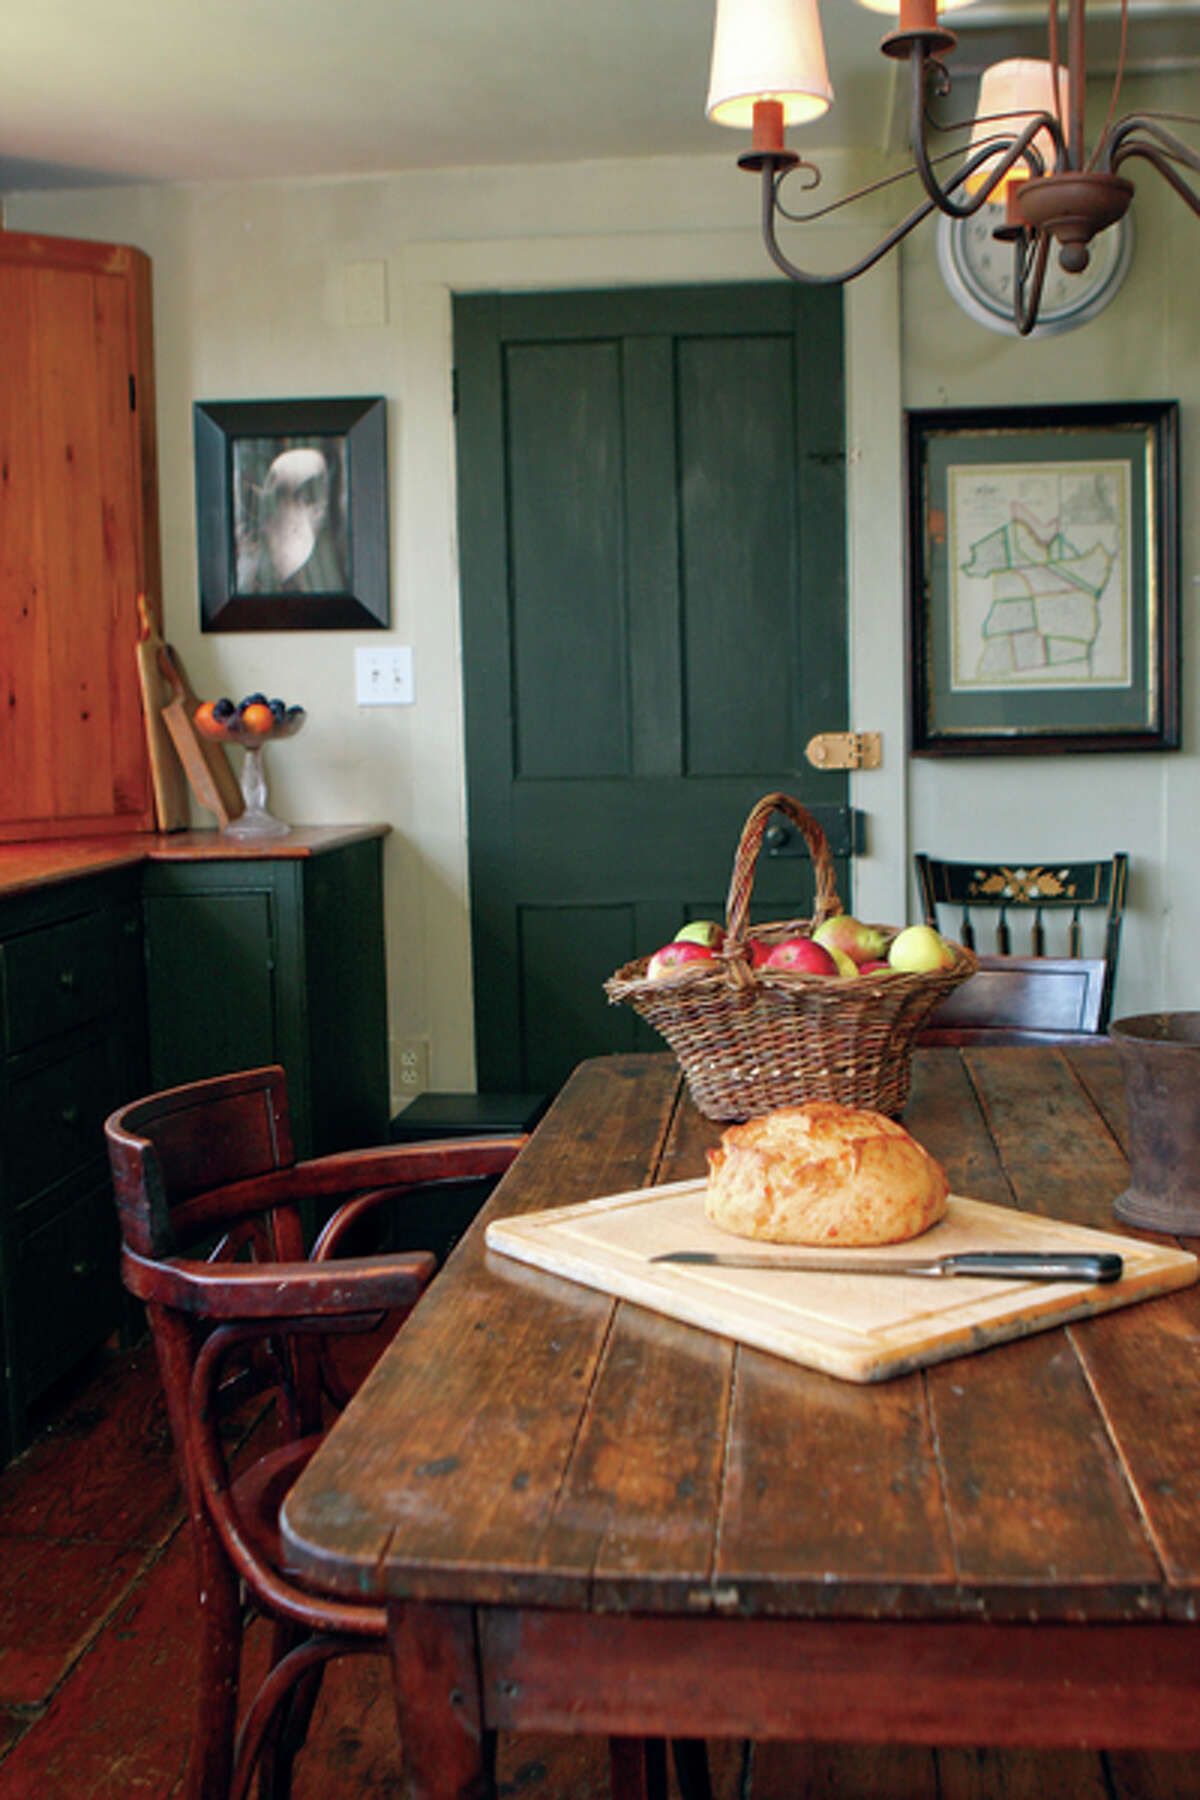 James Brookens' rustic home is filled with interesting pictures and objects. Read the story here. (Photos by Krishna Hill/Life@Home)